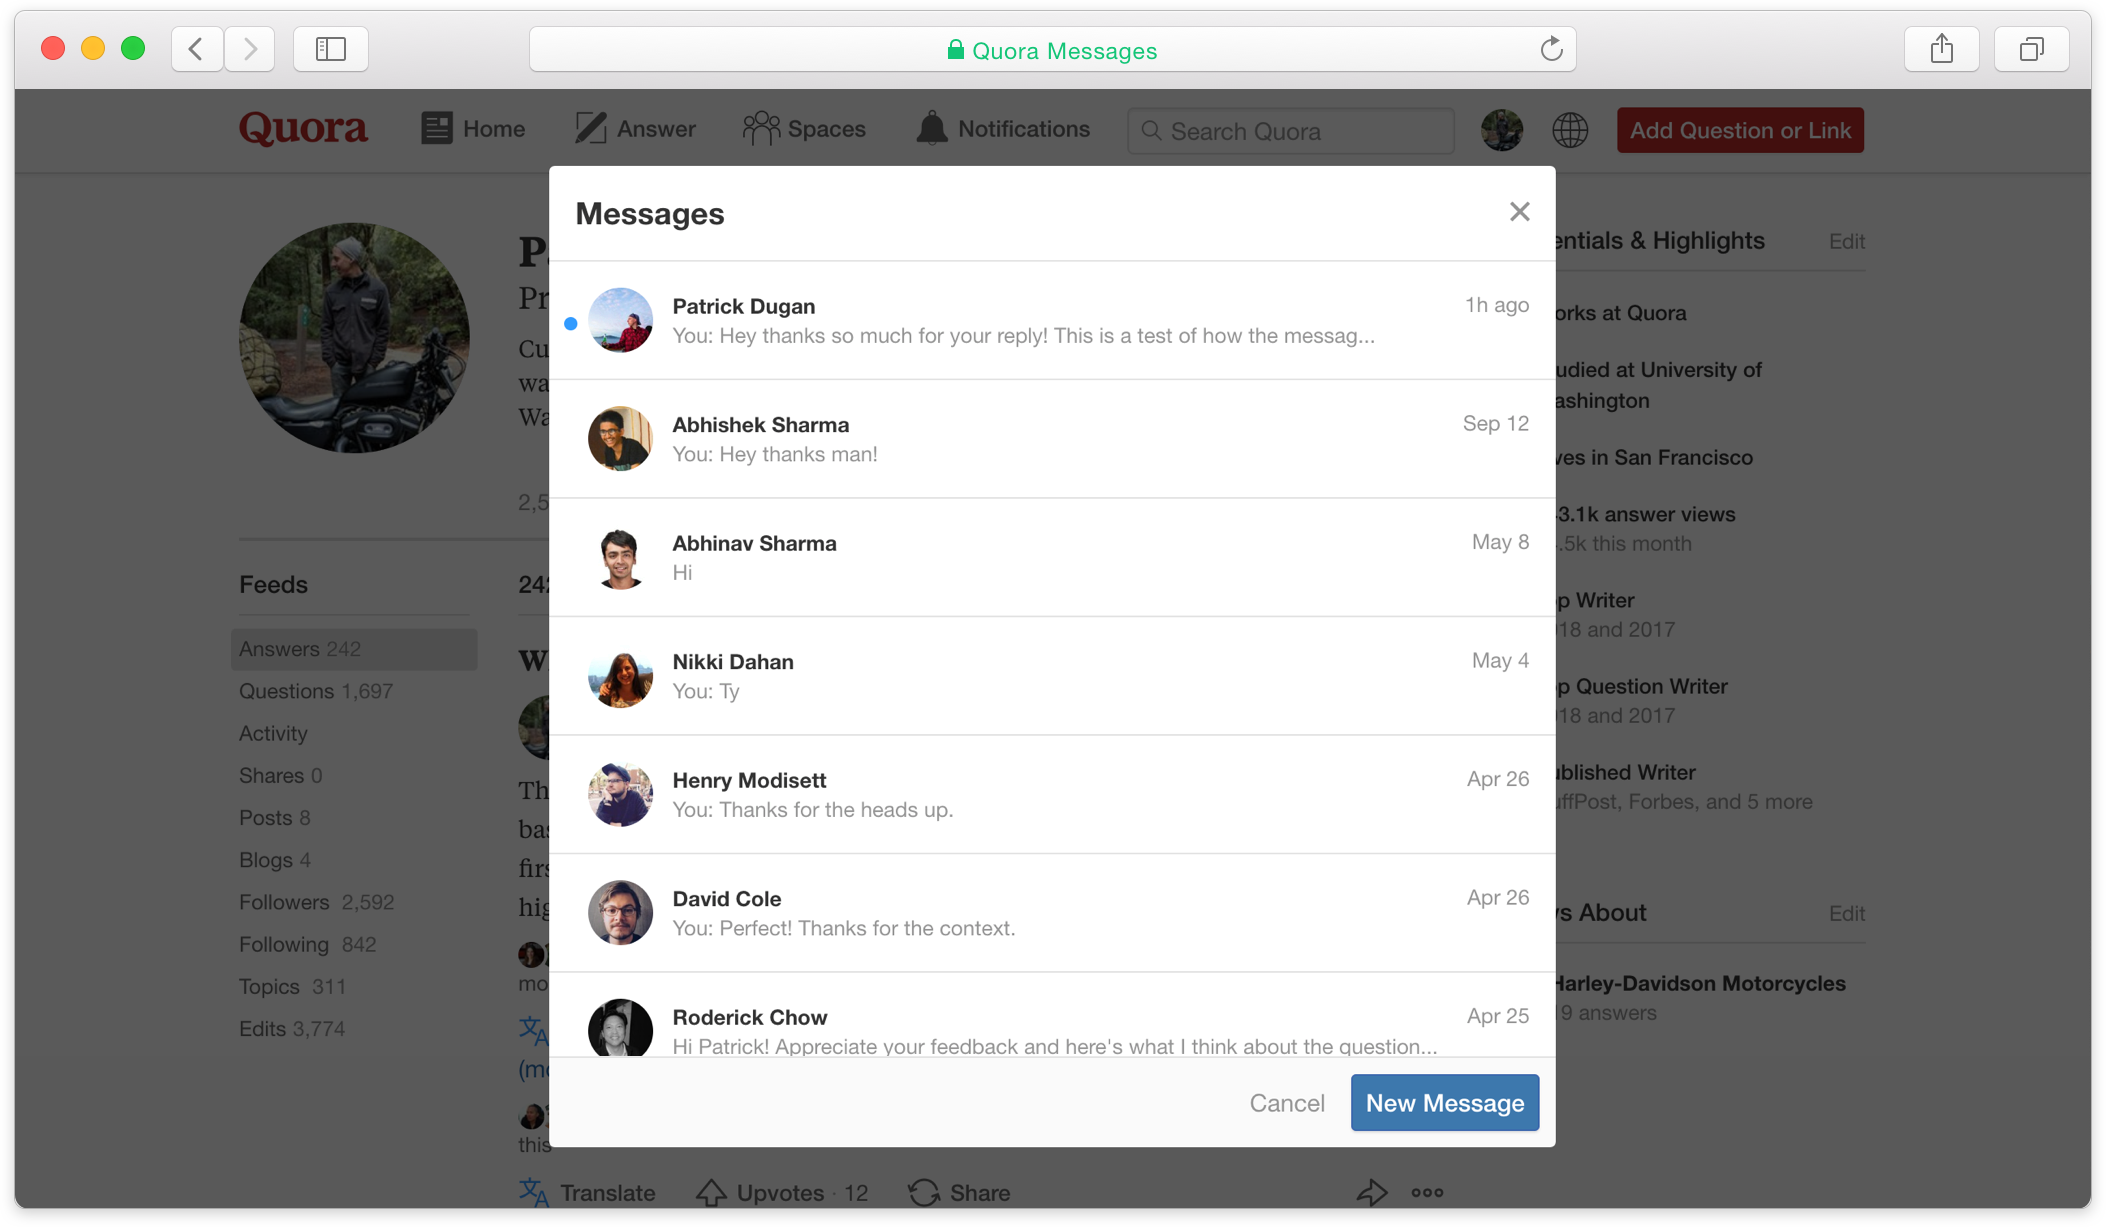 The main screen for Quora Messages on desktop.